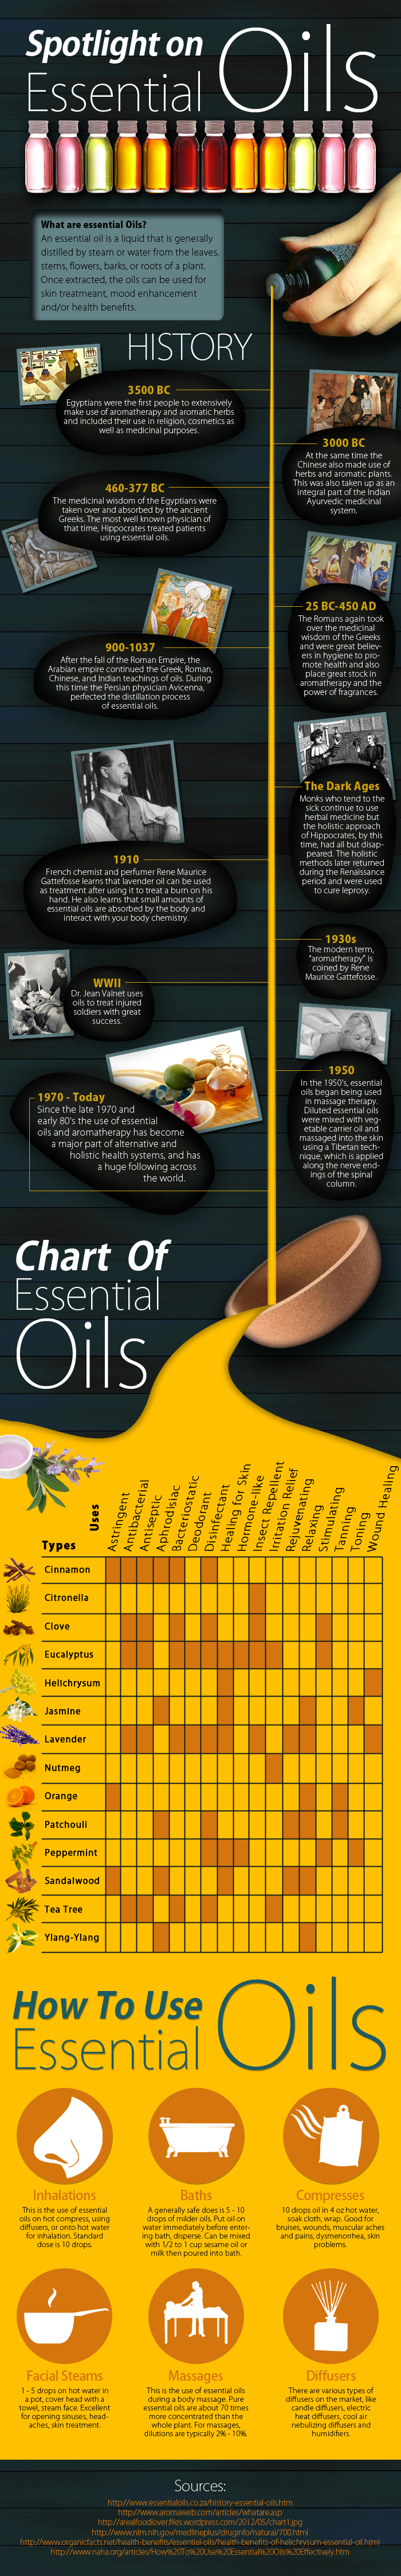 Spotlight on Essential Oils - Infographic